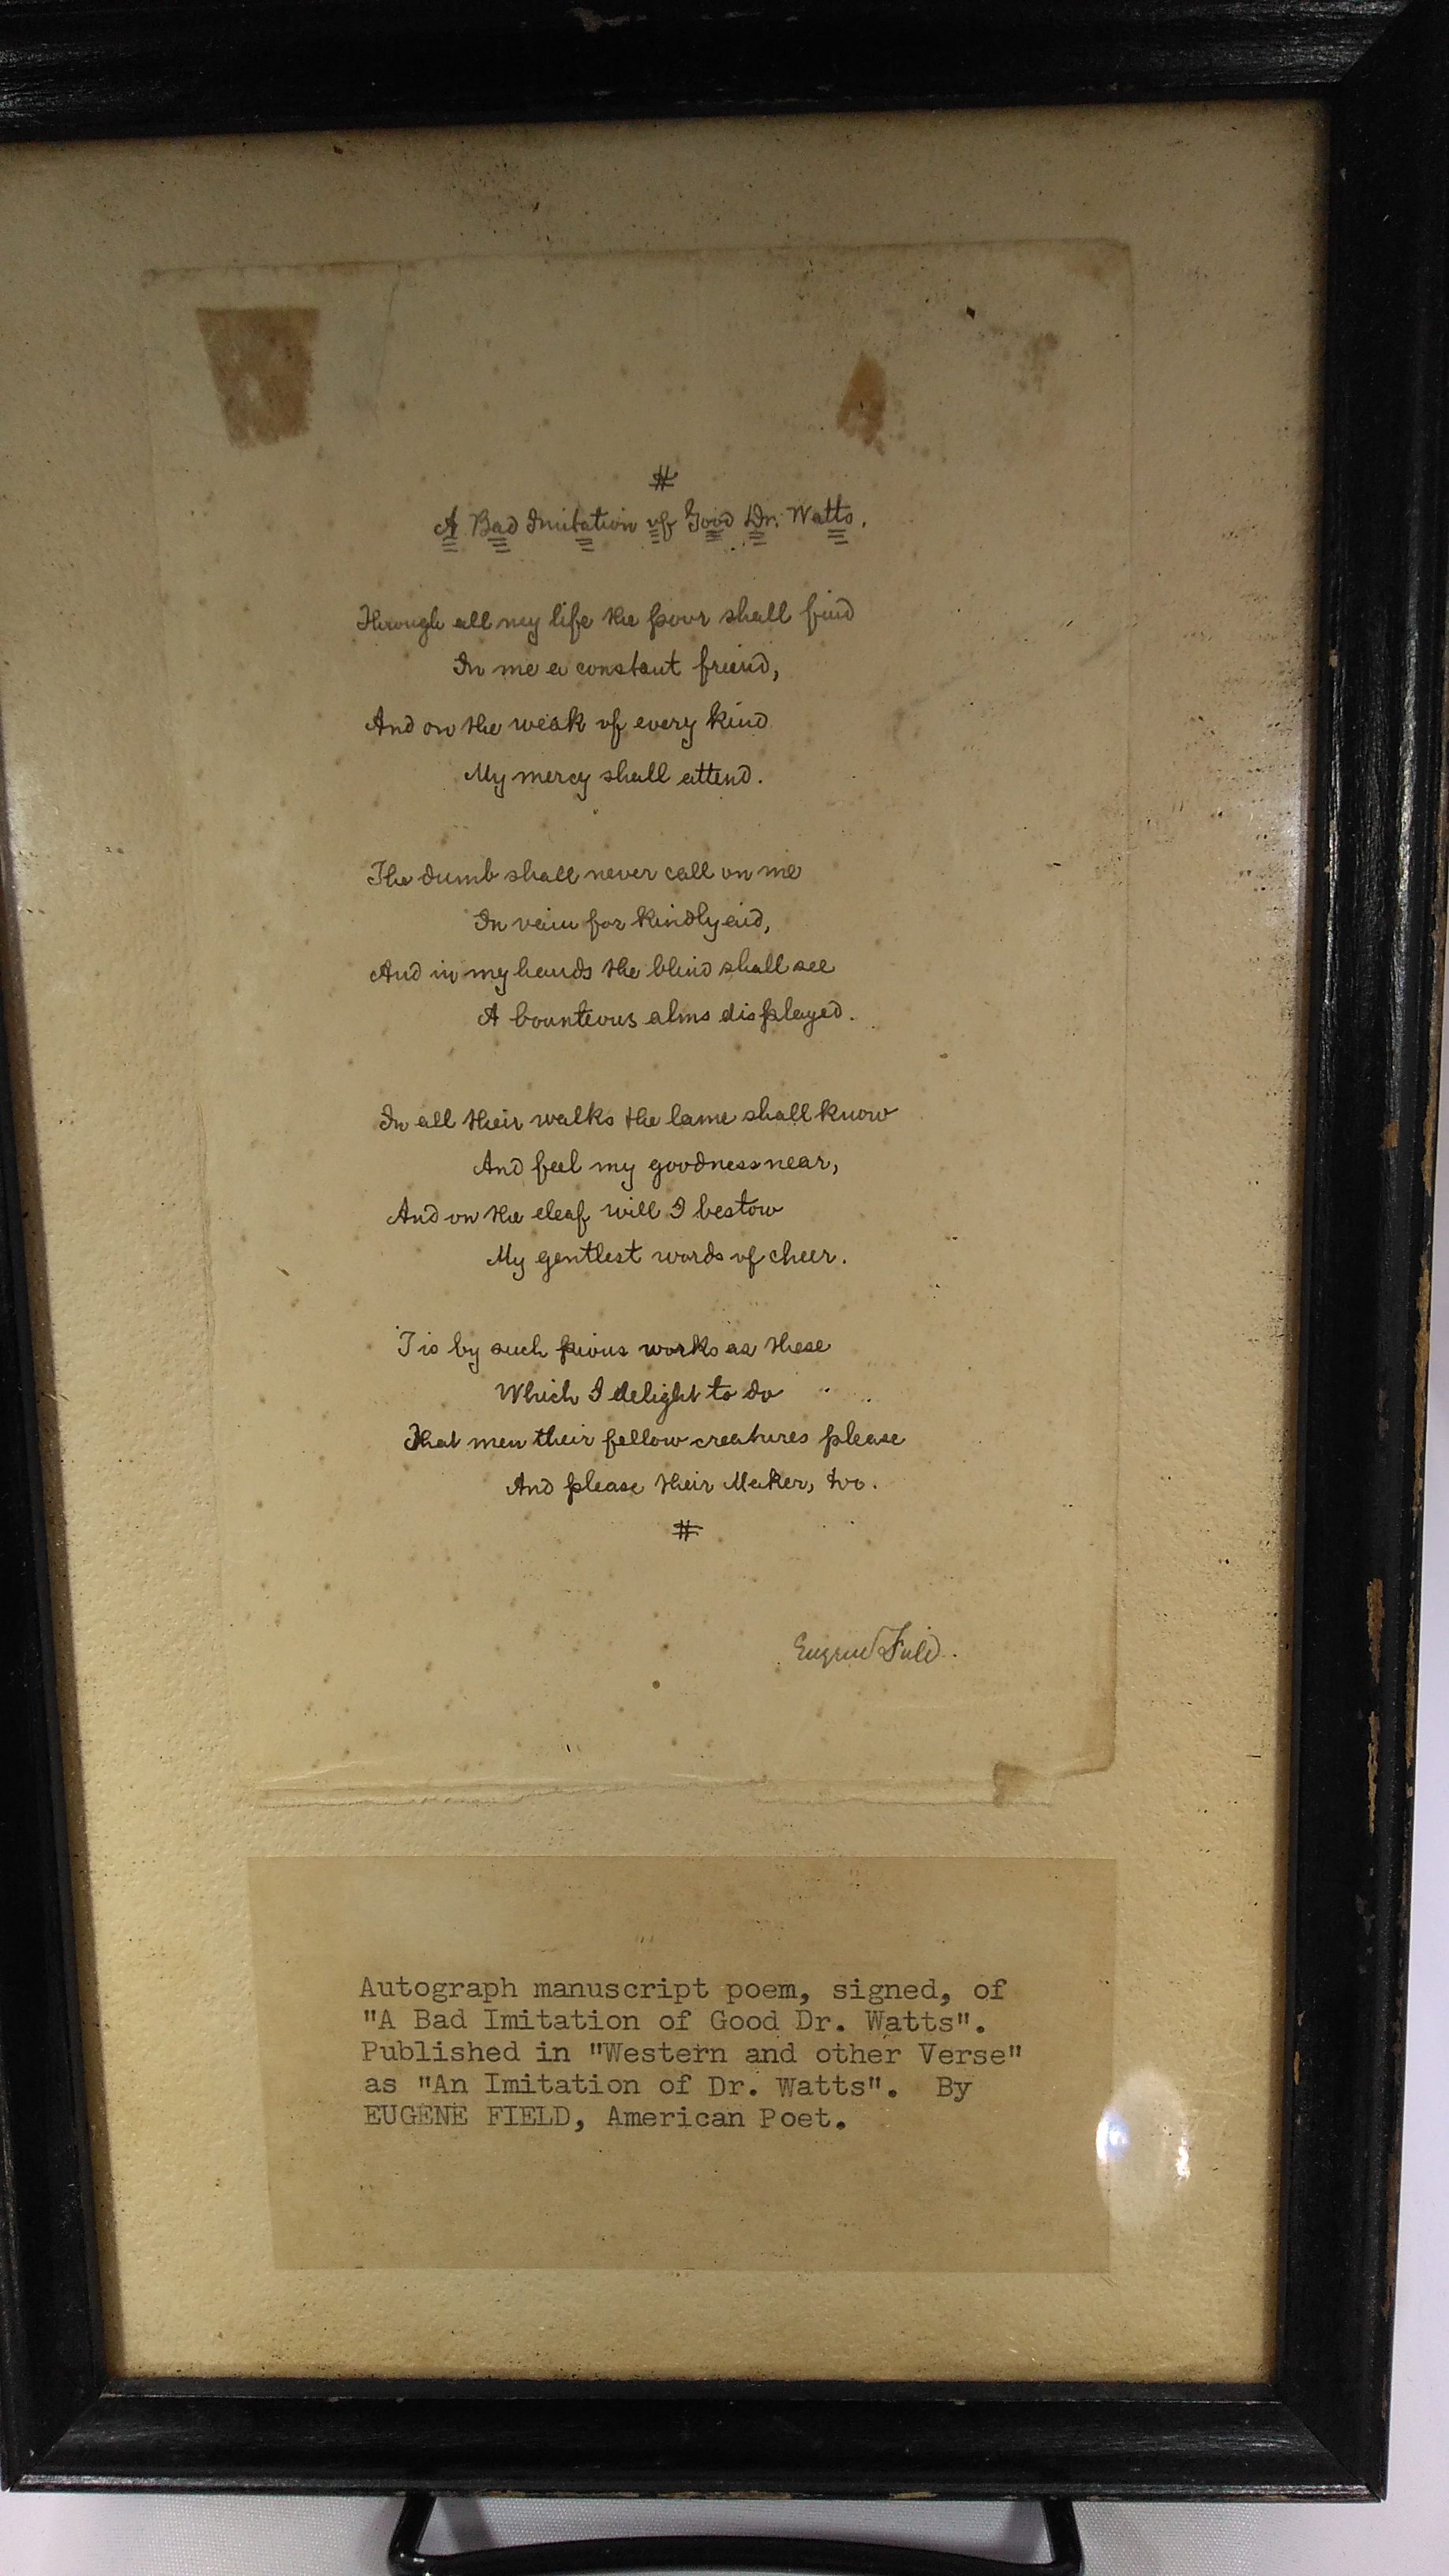 Image for A Bad Imitation Of Good Dr. Watts (Signed Manuscript Poem)